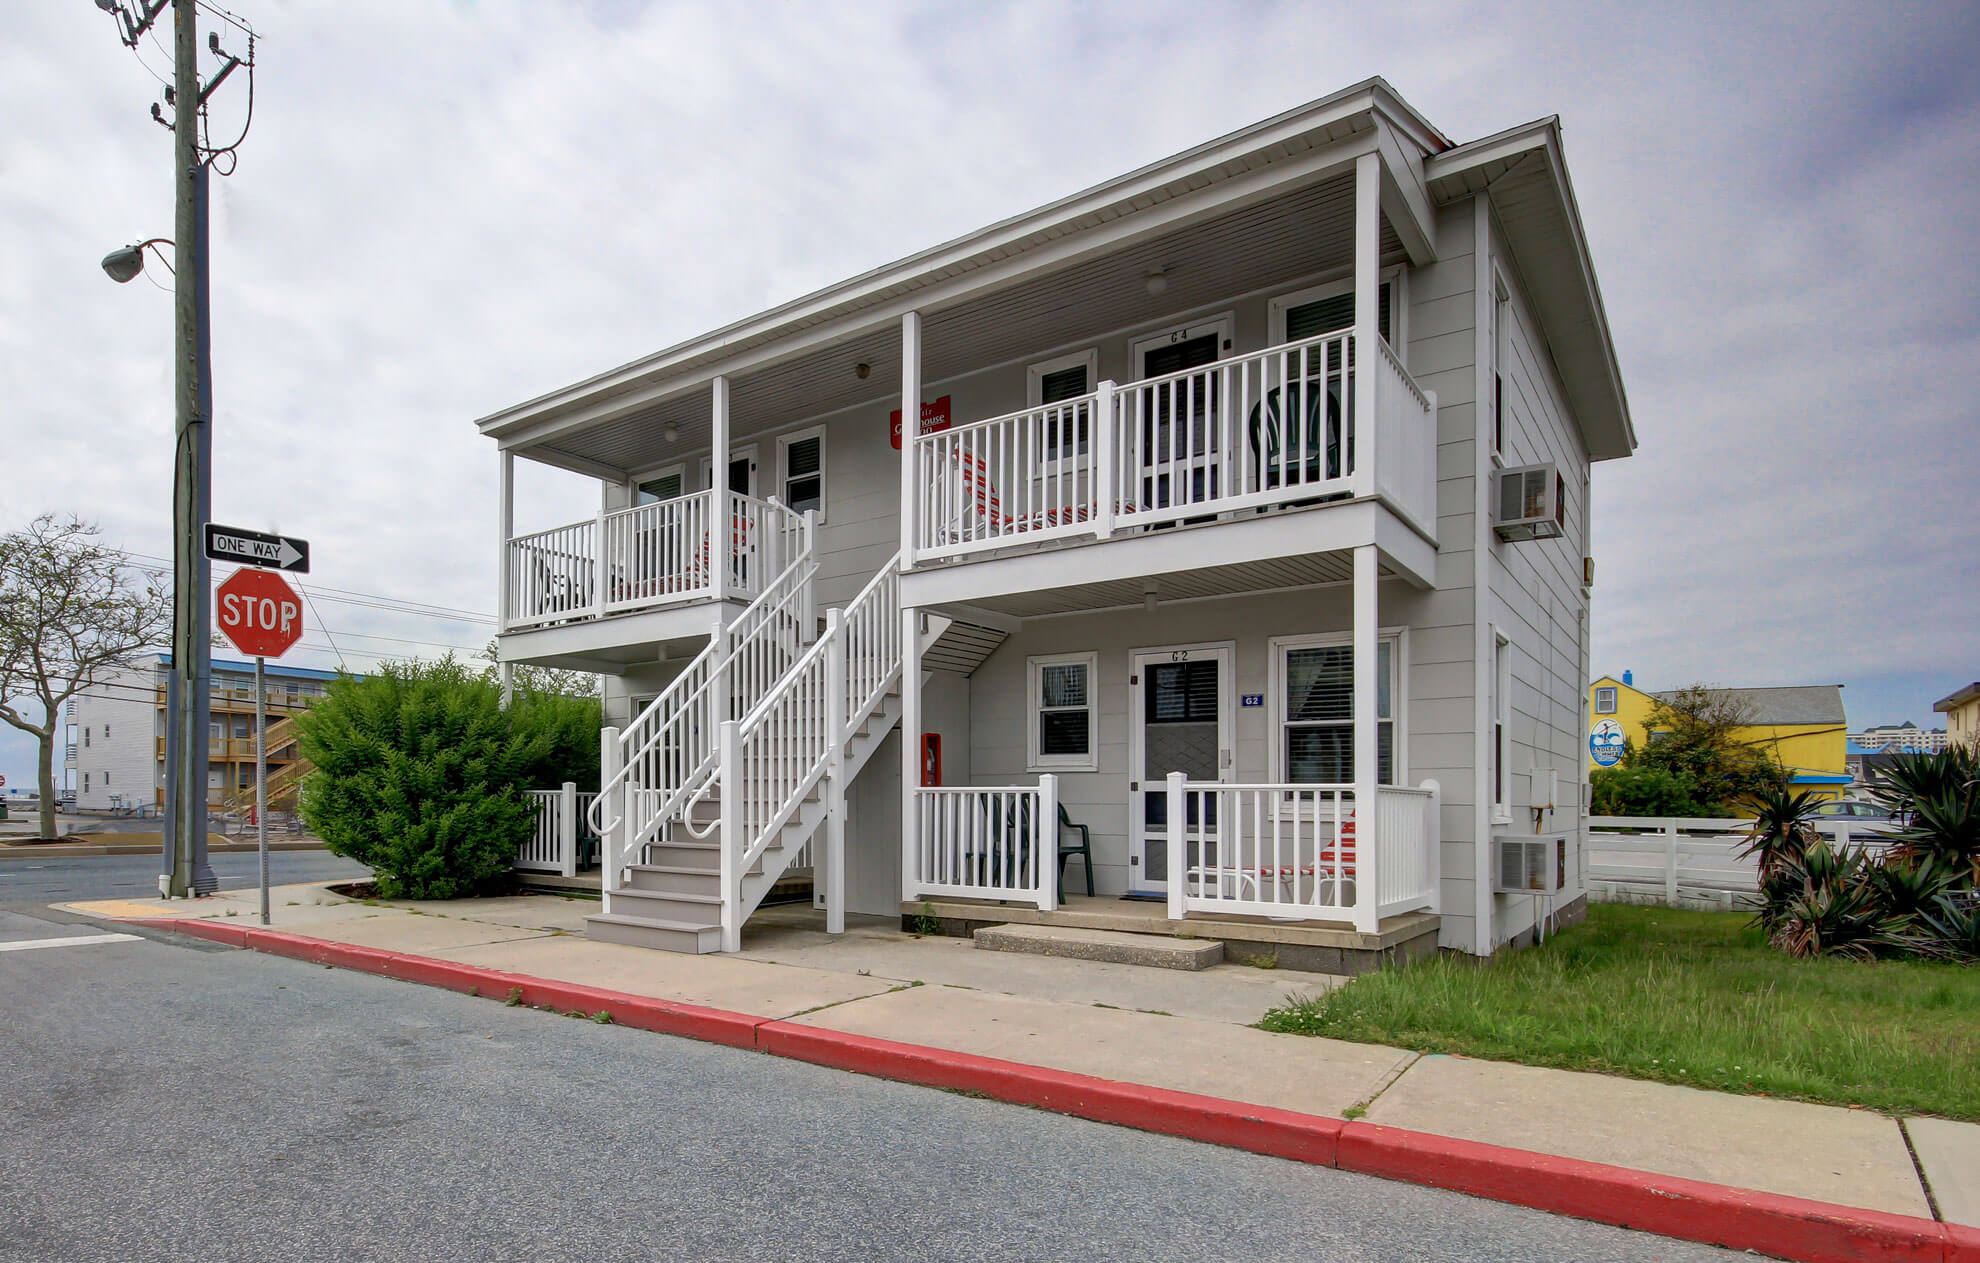 Guest-house-ocean-city-md-street